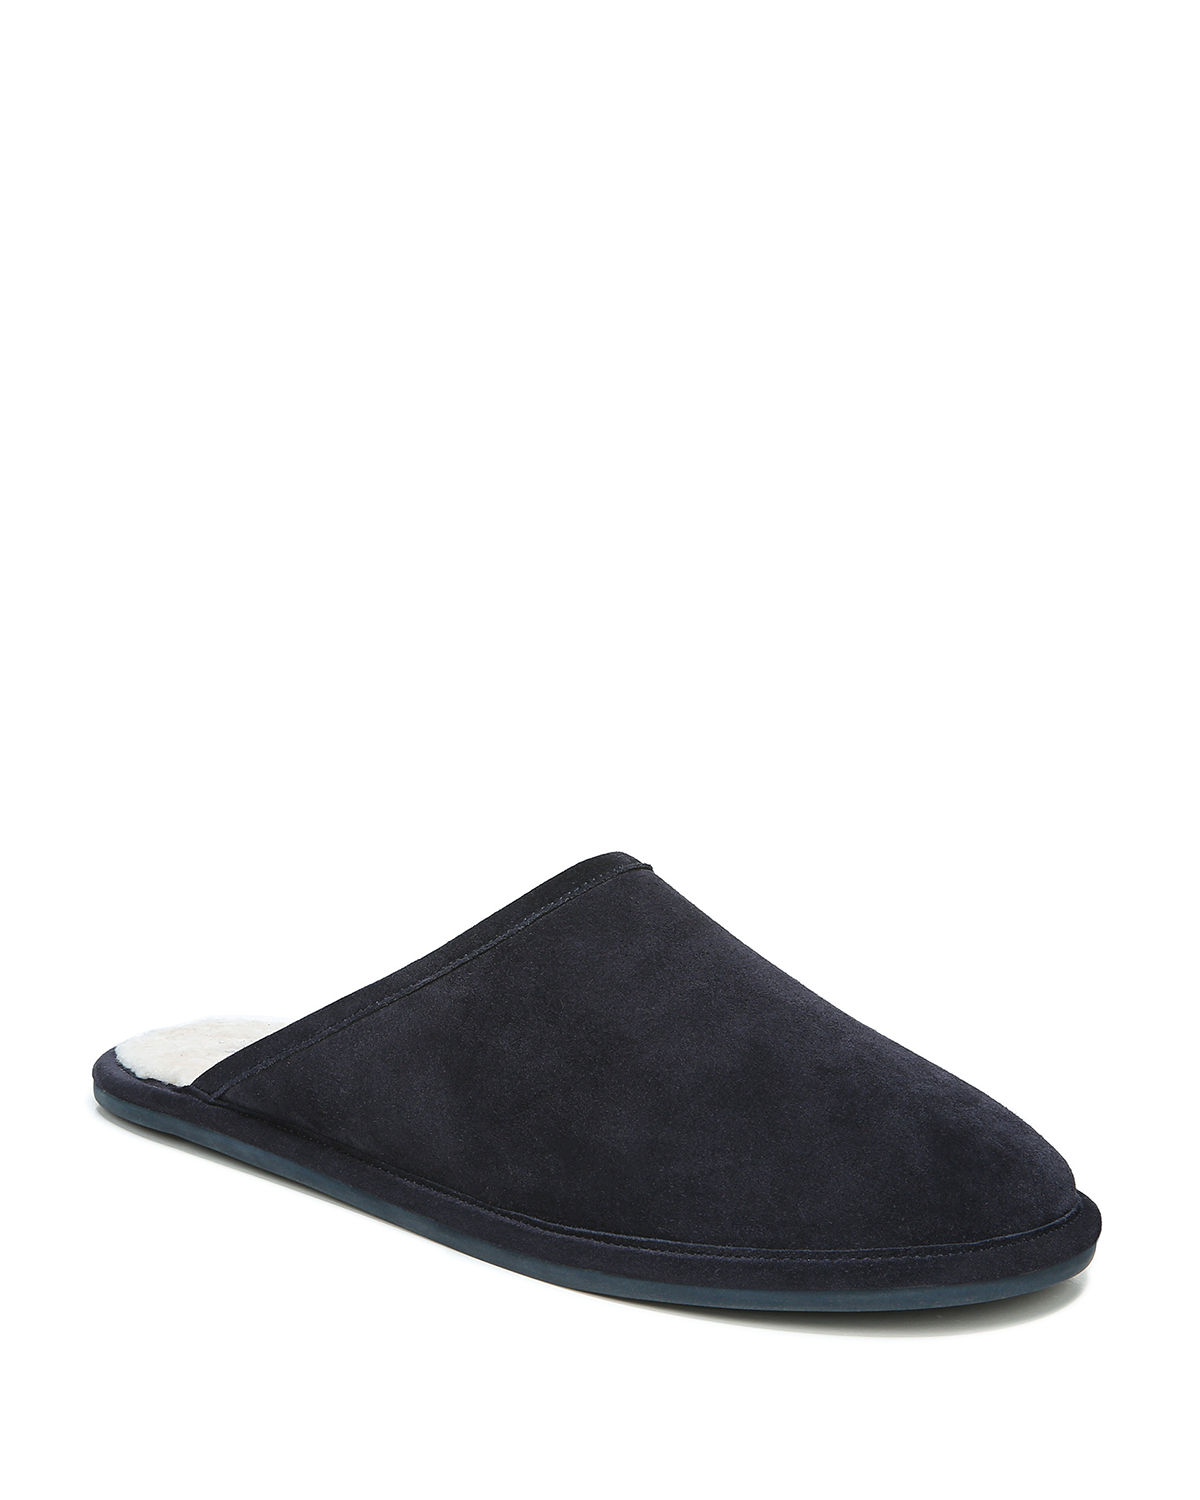 Men's Hampton Suede Shearling Lined Slippers